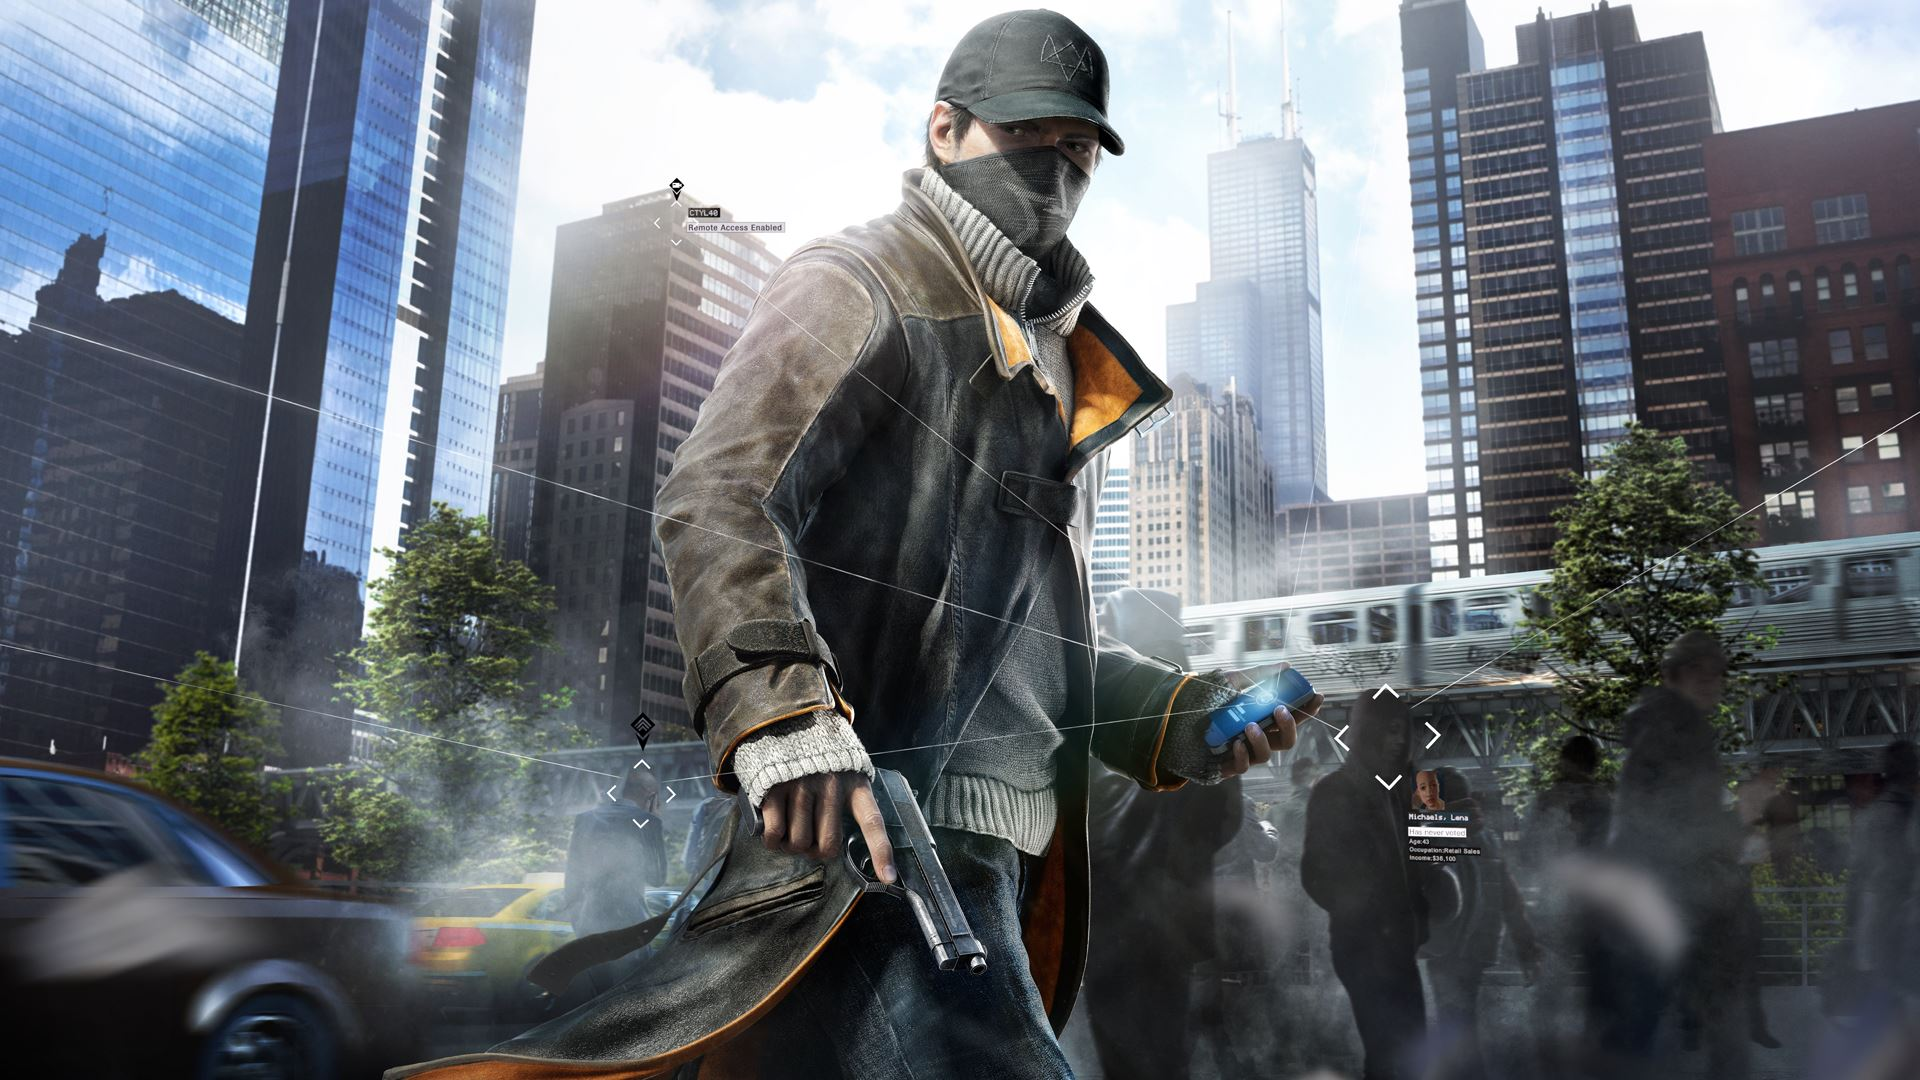 Watch Dogs Legion Leaks Ahead Of E3 And Could Deliver